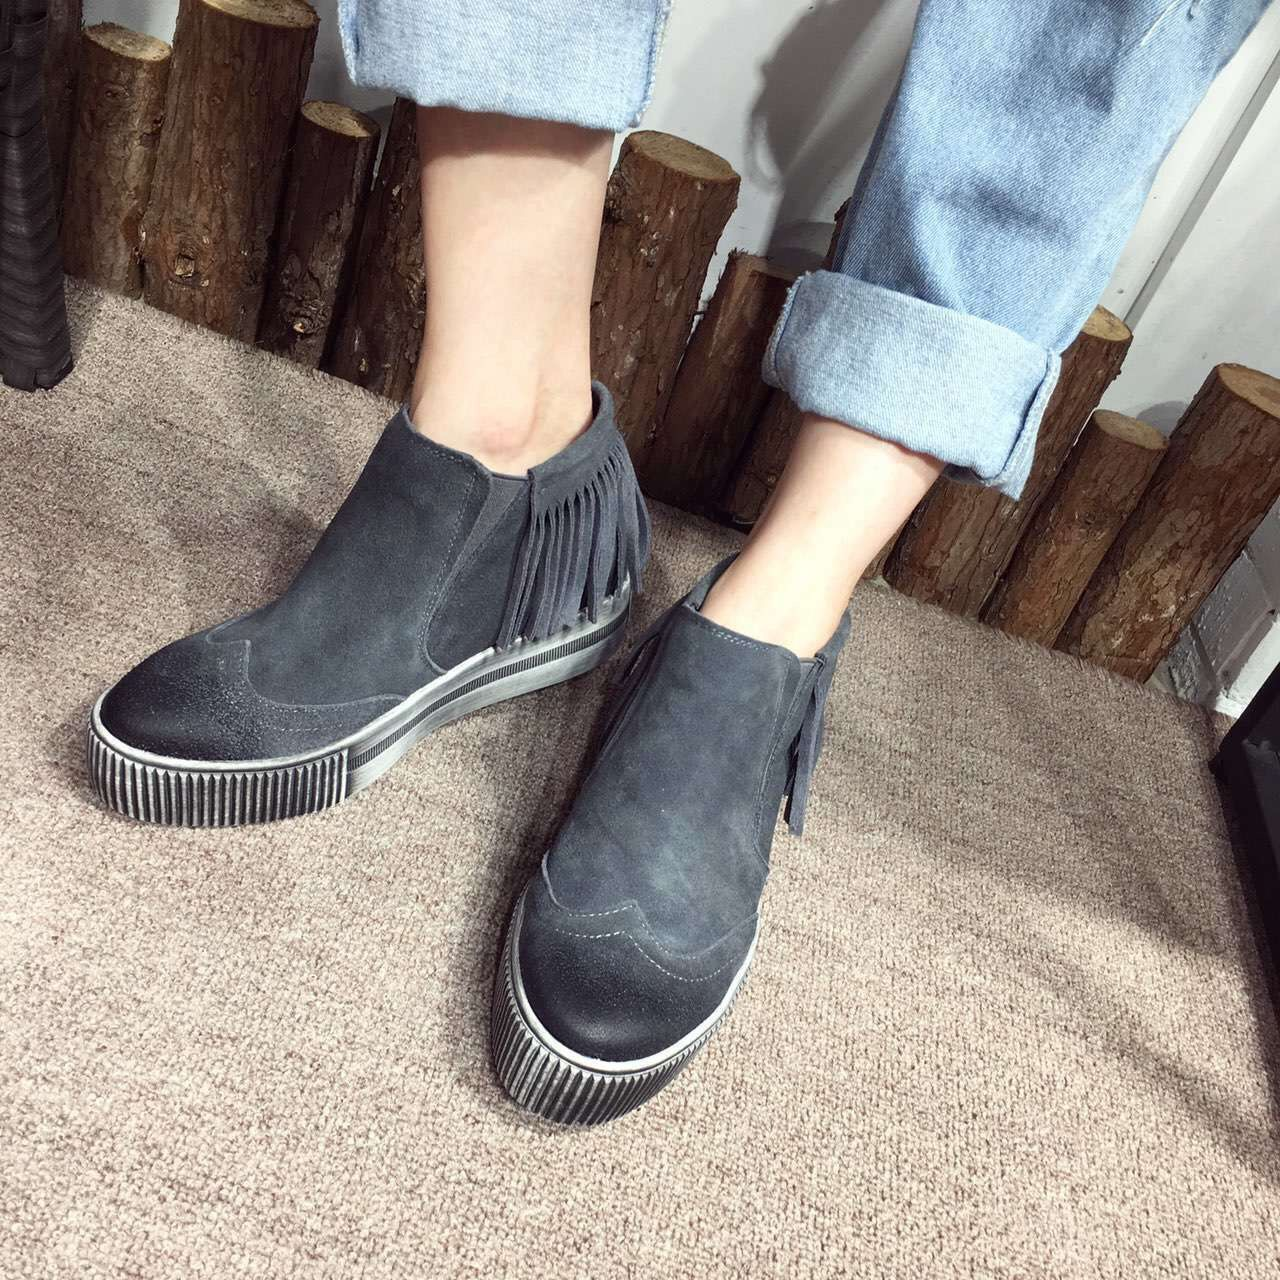 2016 New Winter Genuine Leather Suede Calfskin Tassel Short Boot Vintage Ankle Boots Shoes Woman Boots Bottes Hiver Femmes